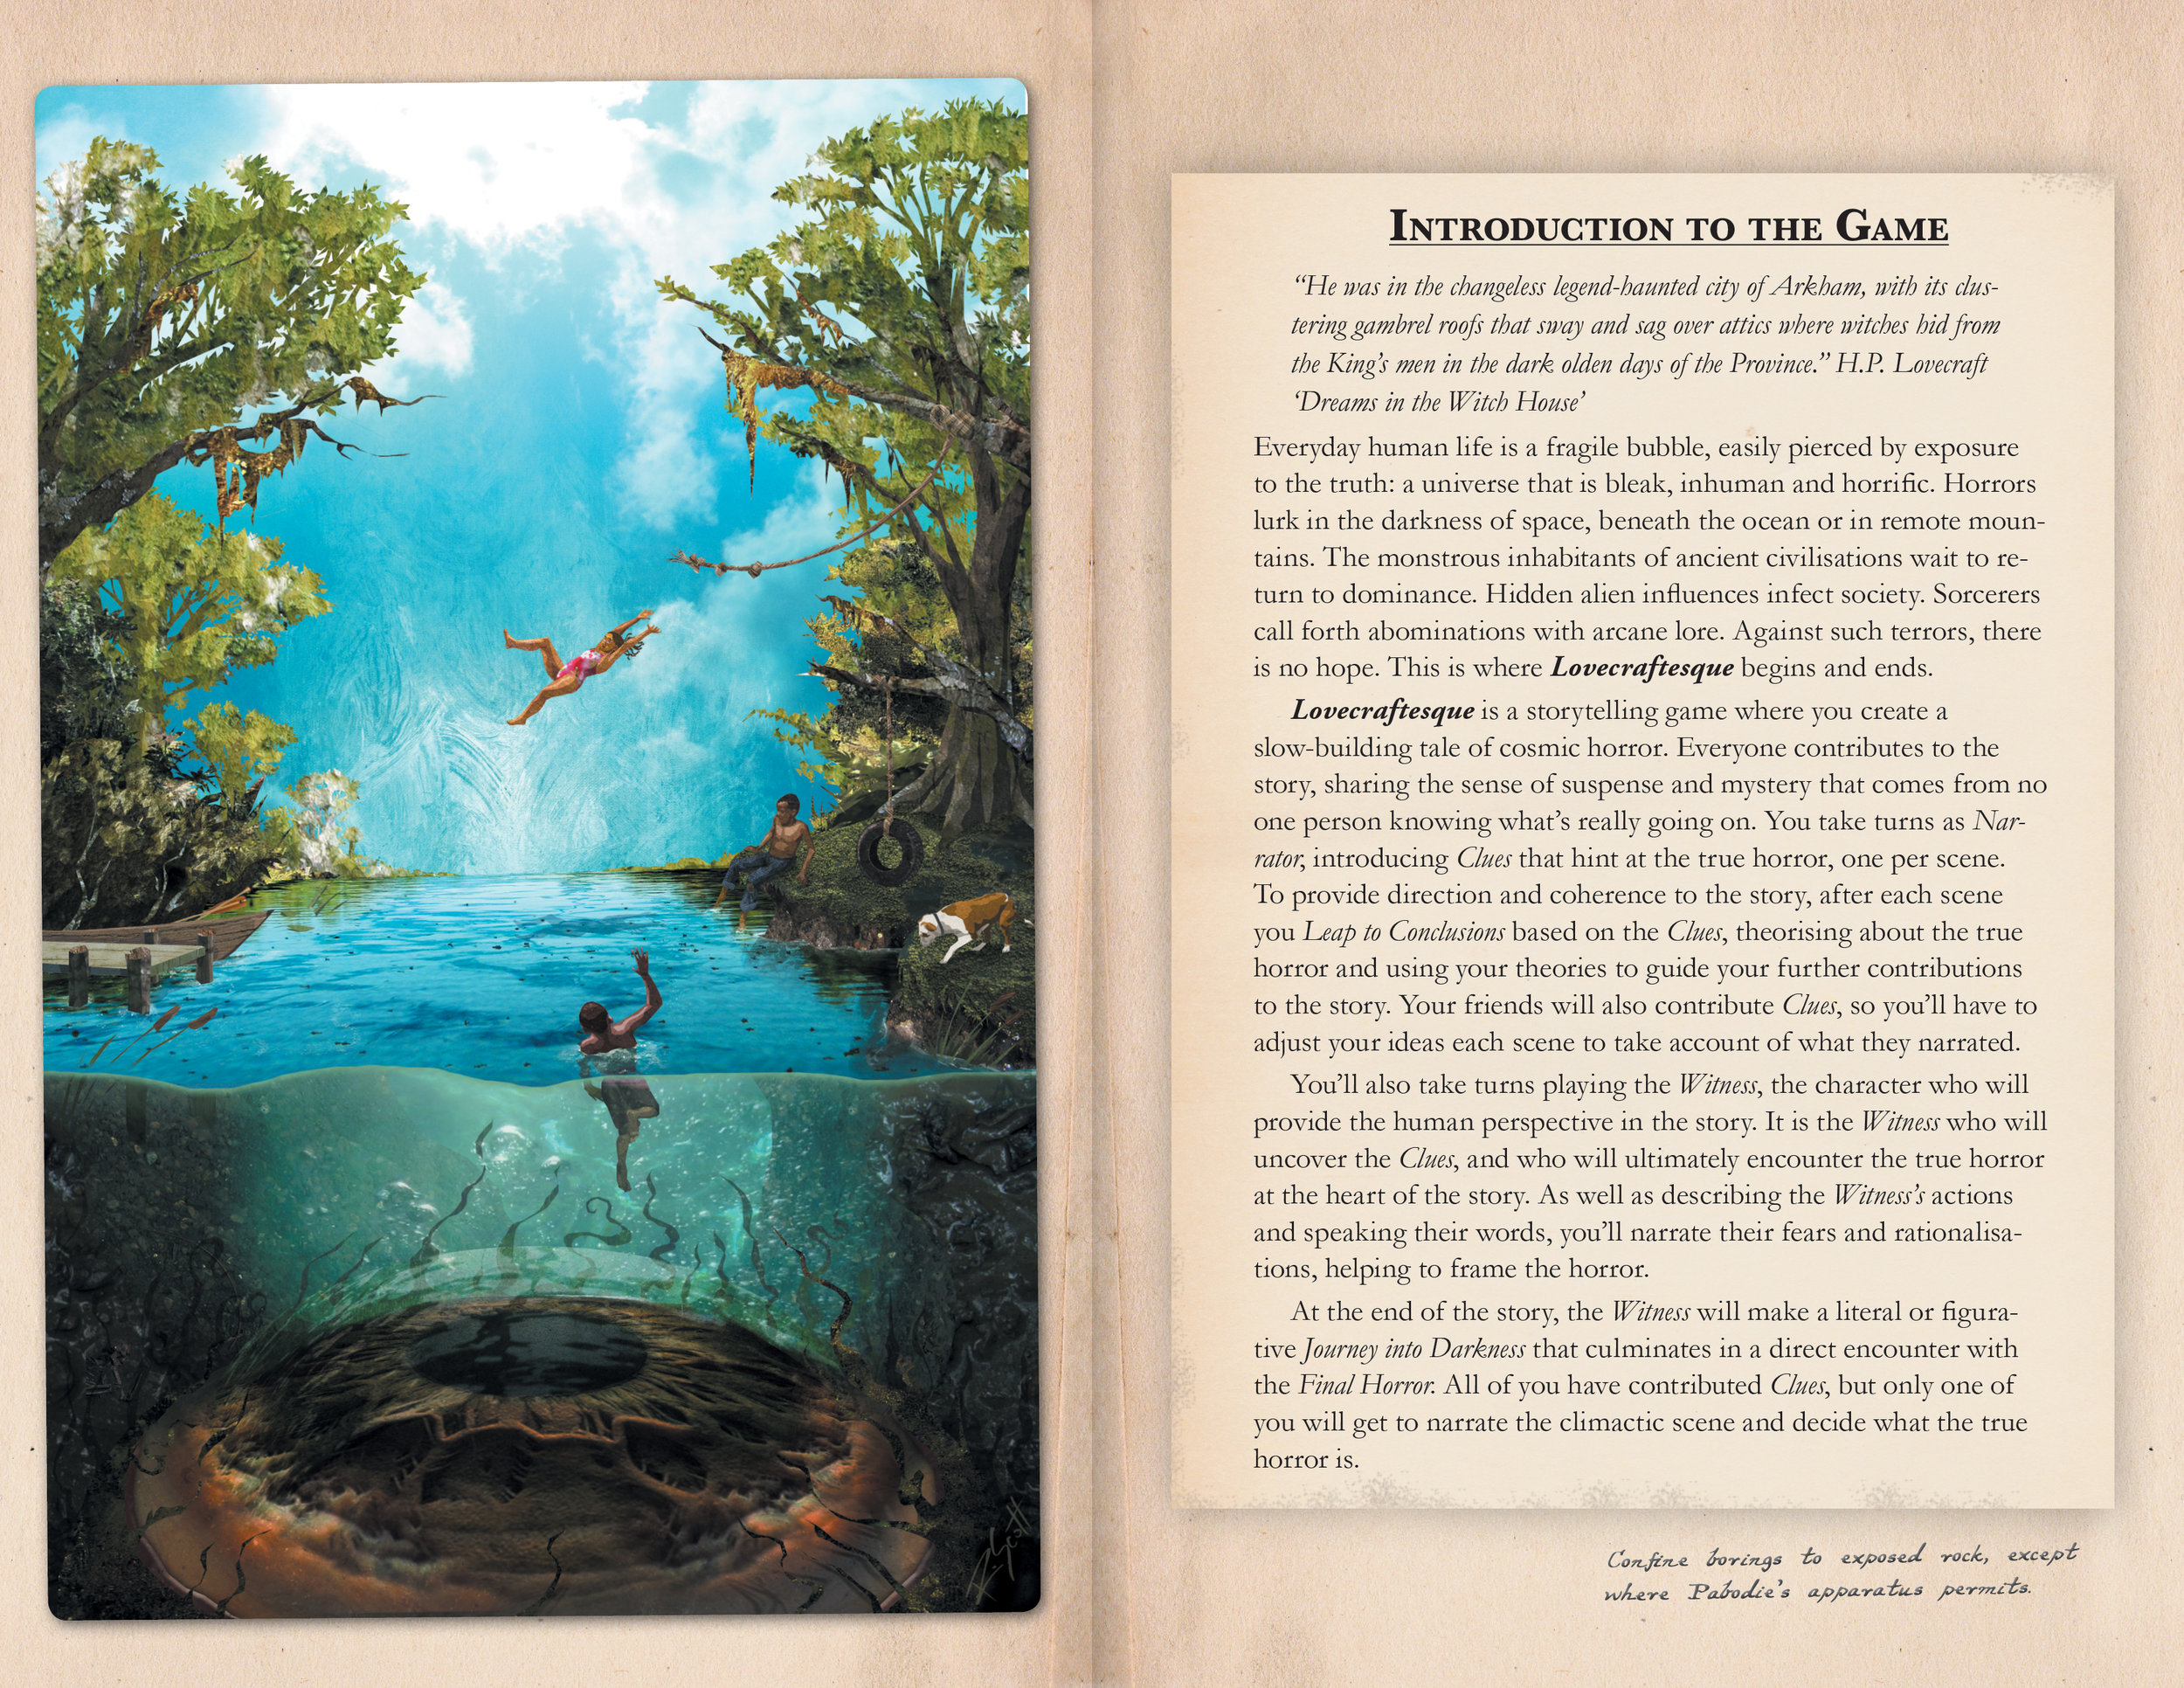 Chapter Intro from early in the book - the pages and background deteriorate as the reader goes on.